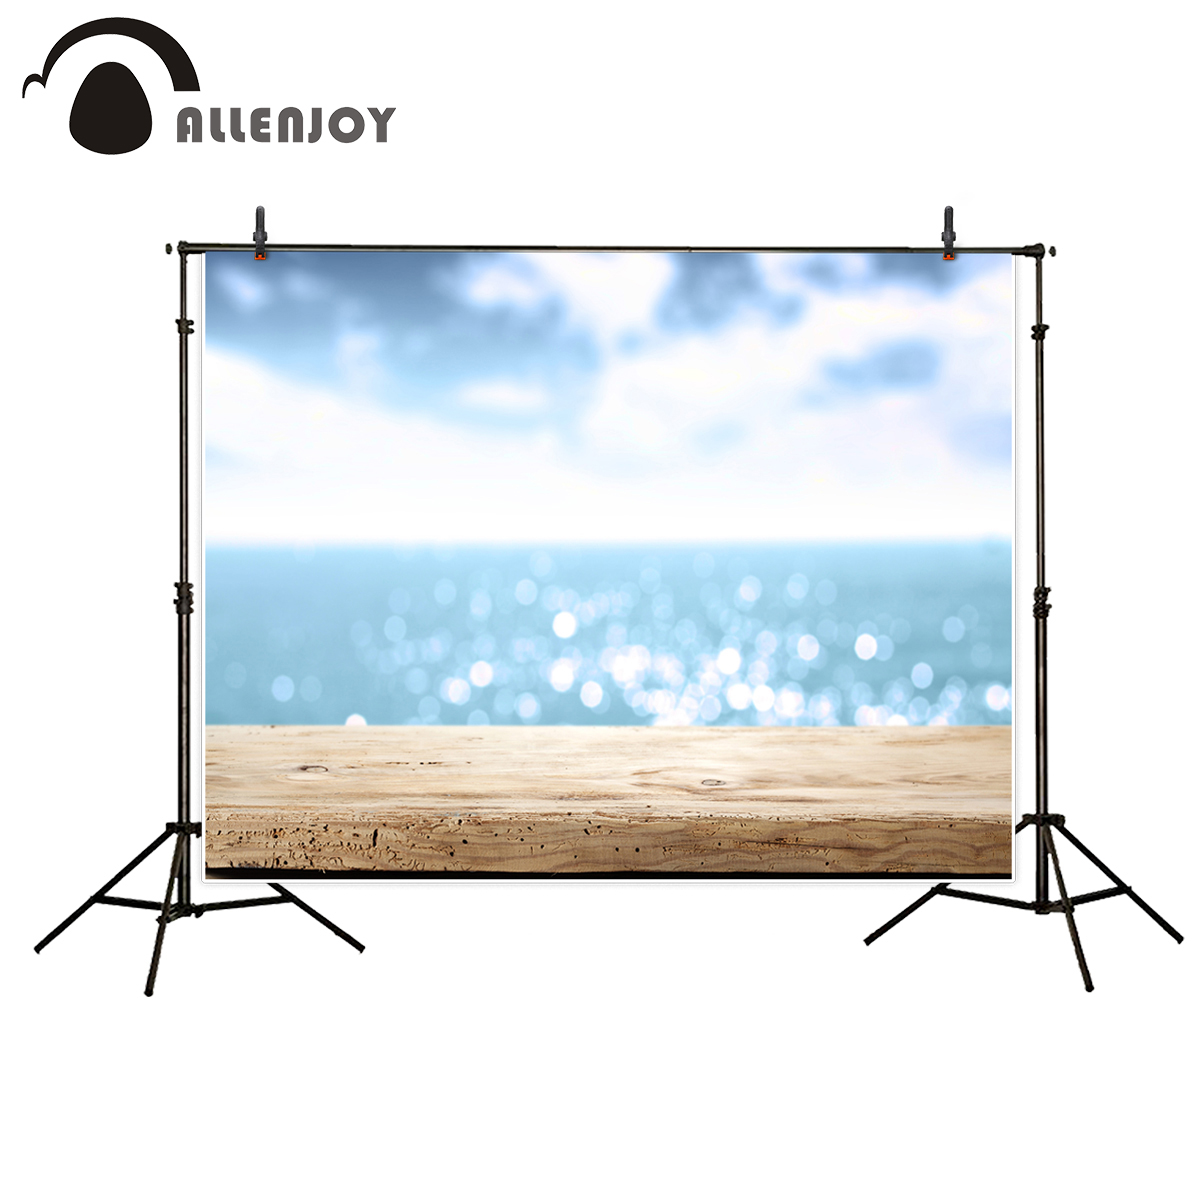 Allenjoy dreamy photography backdrops photographer wooden floor sea sunny interesting camera fotografica photographic background kate photographic background wood paneled walls of old letters newborn photography photocall interesting camera fotografica